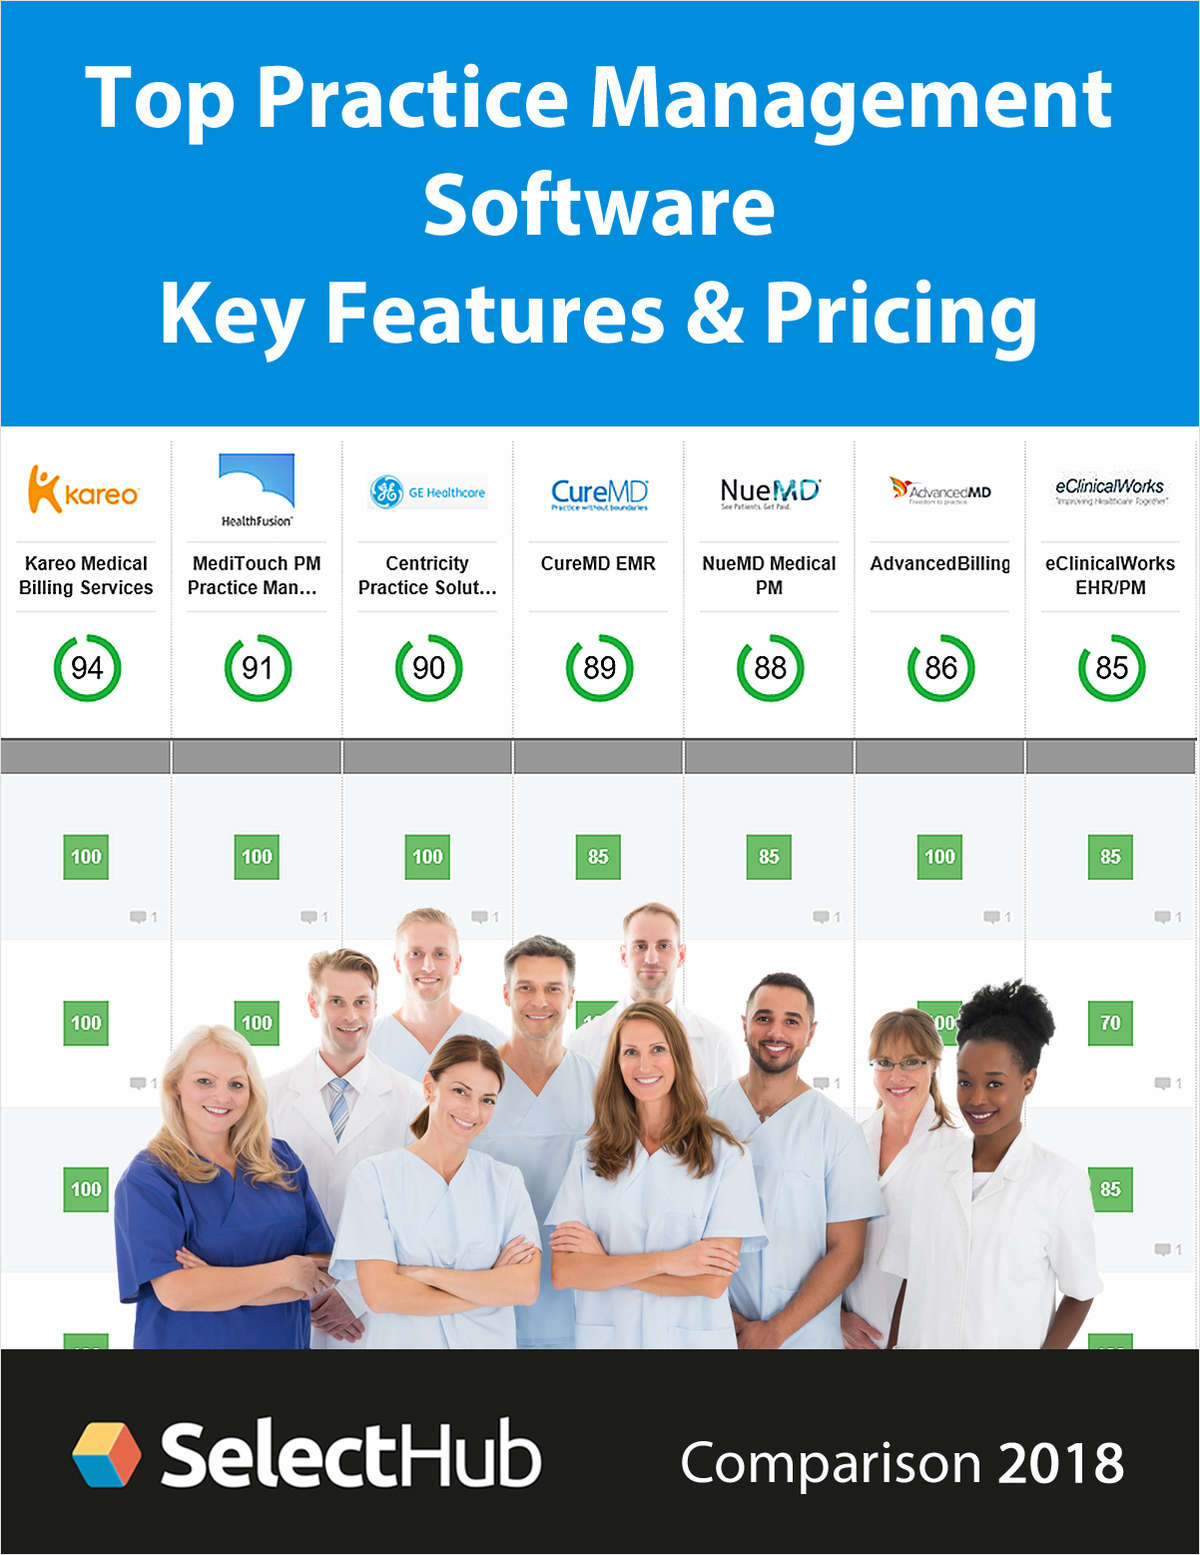 Top Practice Management Software for 2018--Get Key Features, Recommendations & Pricing